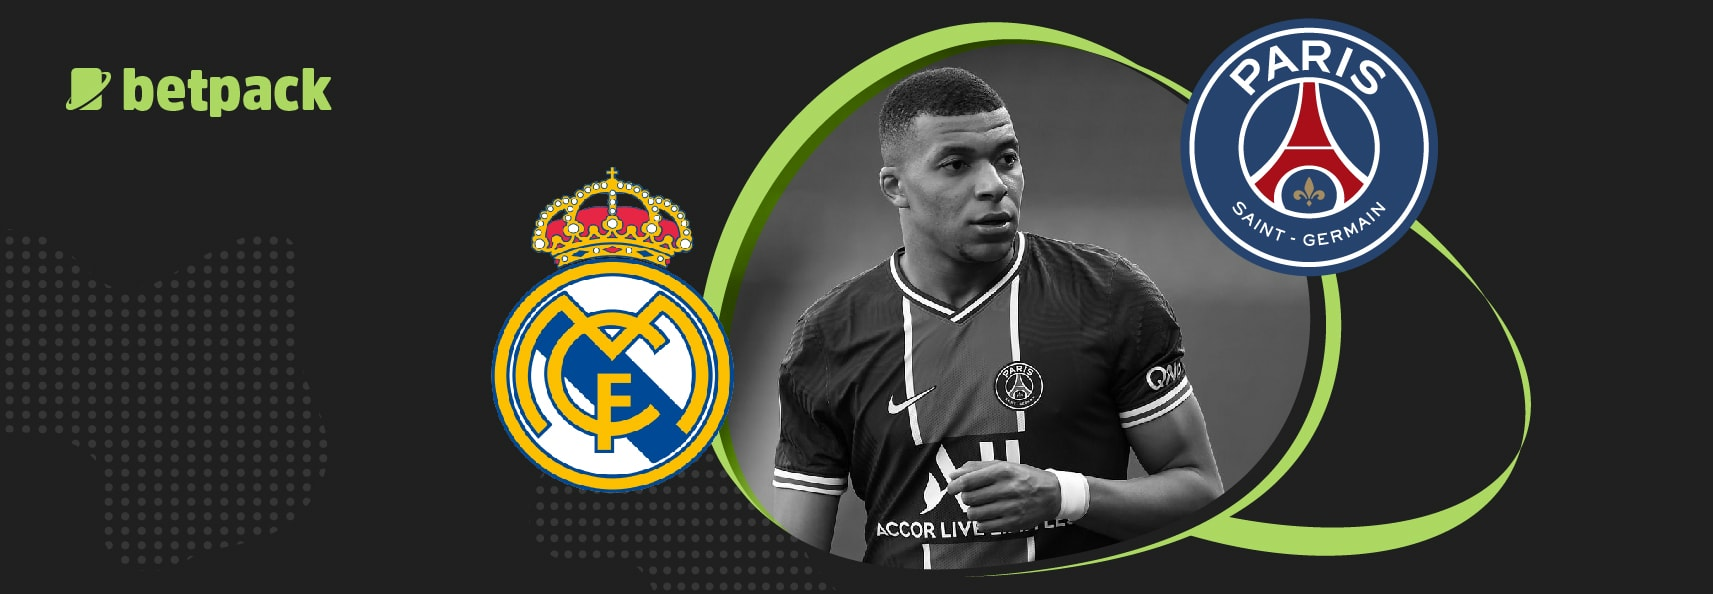 The reason PSG rejected Real Madrid's bids for Mbappe